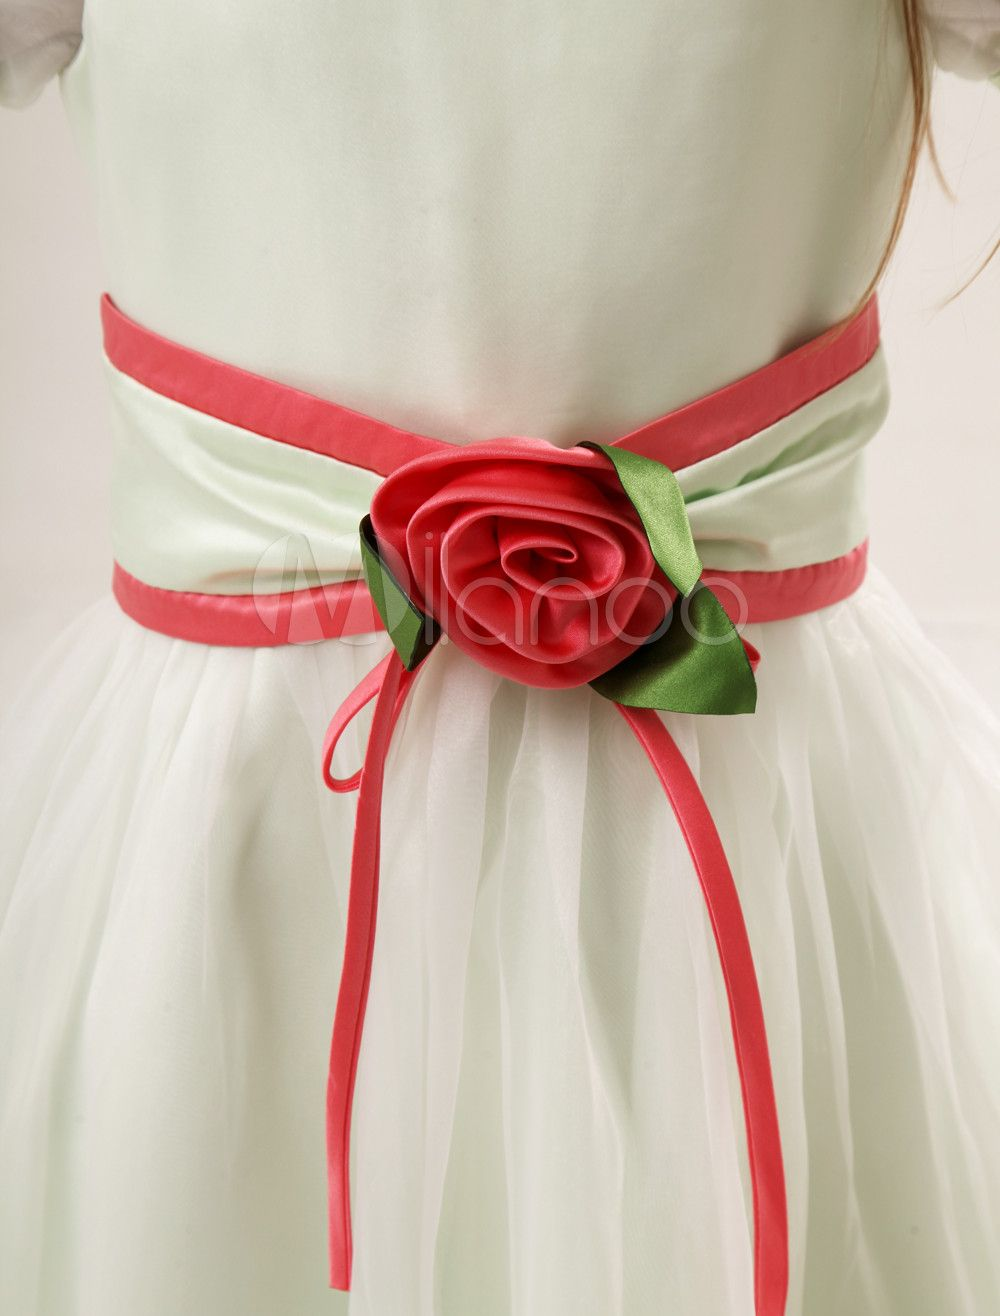 bc2c35c1d58 Cute A-line Sage Satin Jewel Neck Flower Wedding Flower Girl Dress  Satin